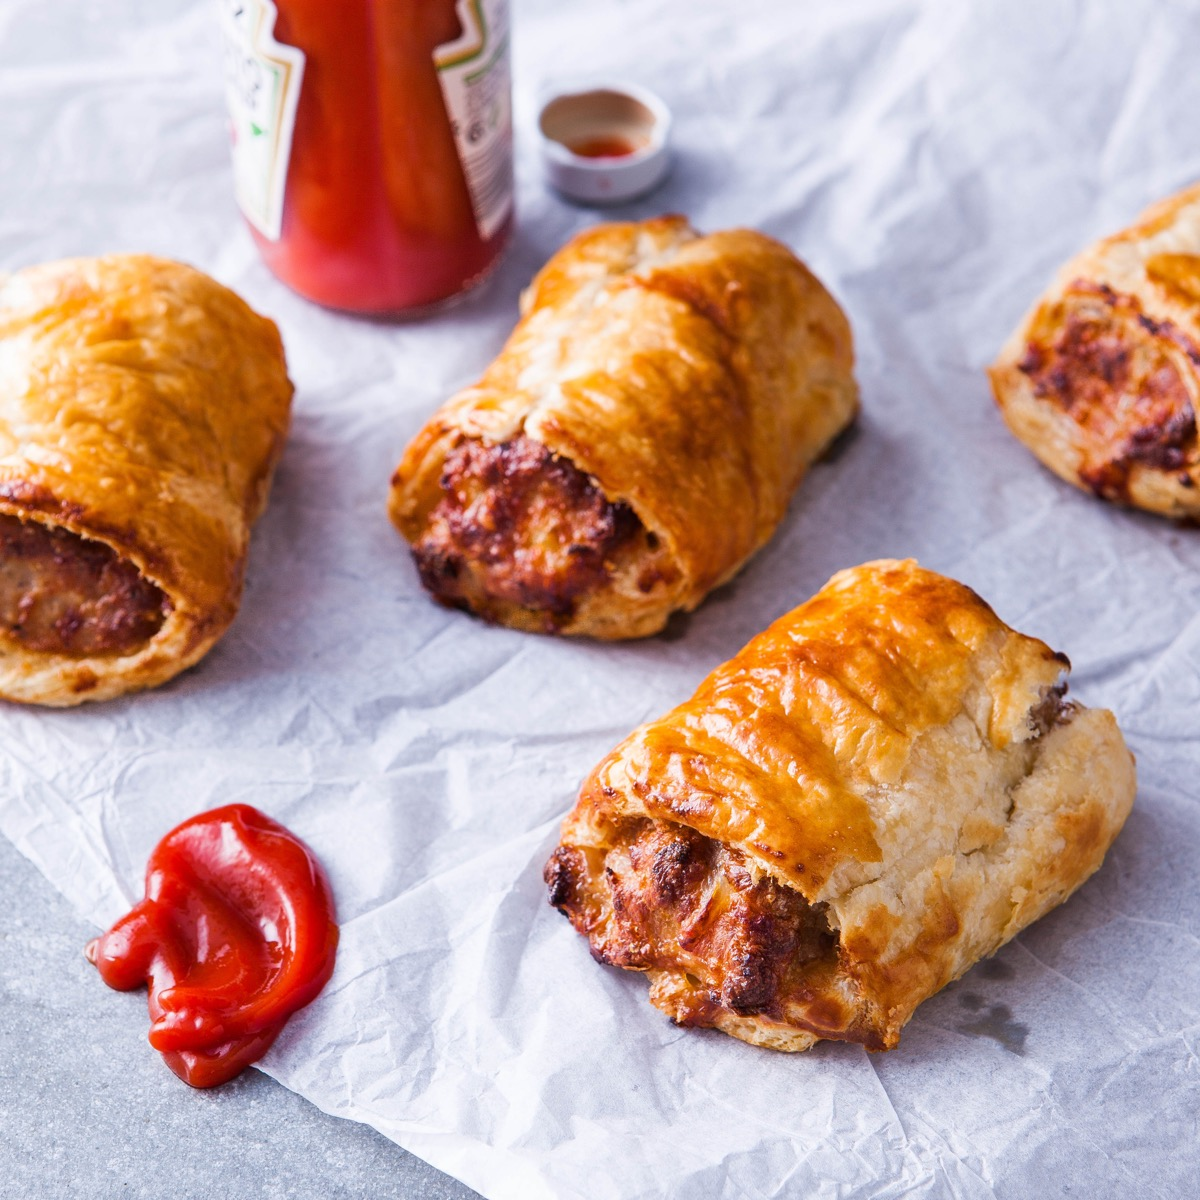 D|F Sausage Rolls - Multiple Options Available